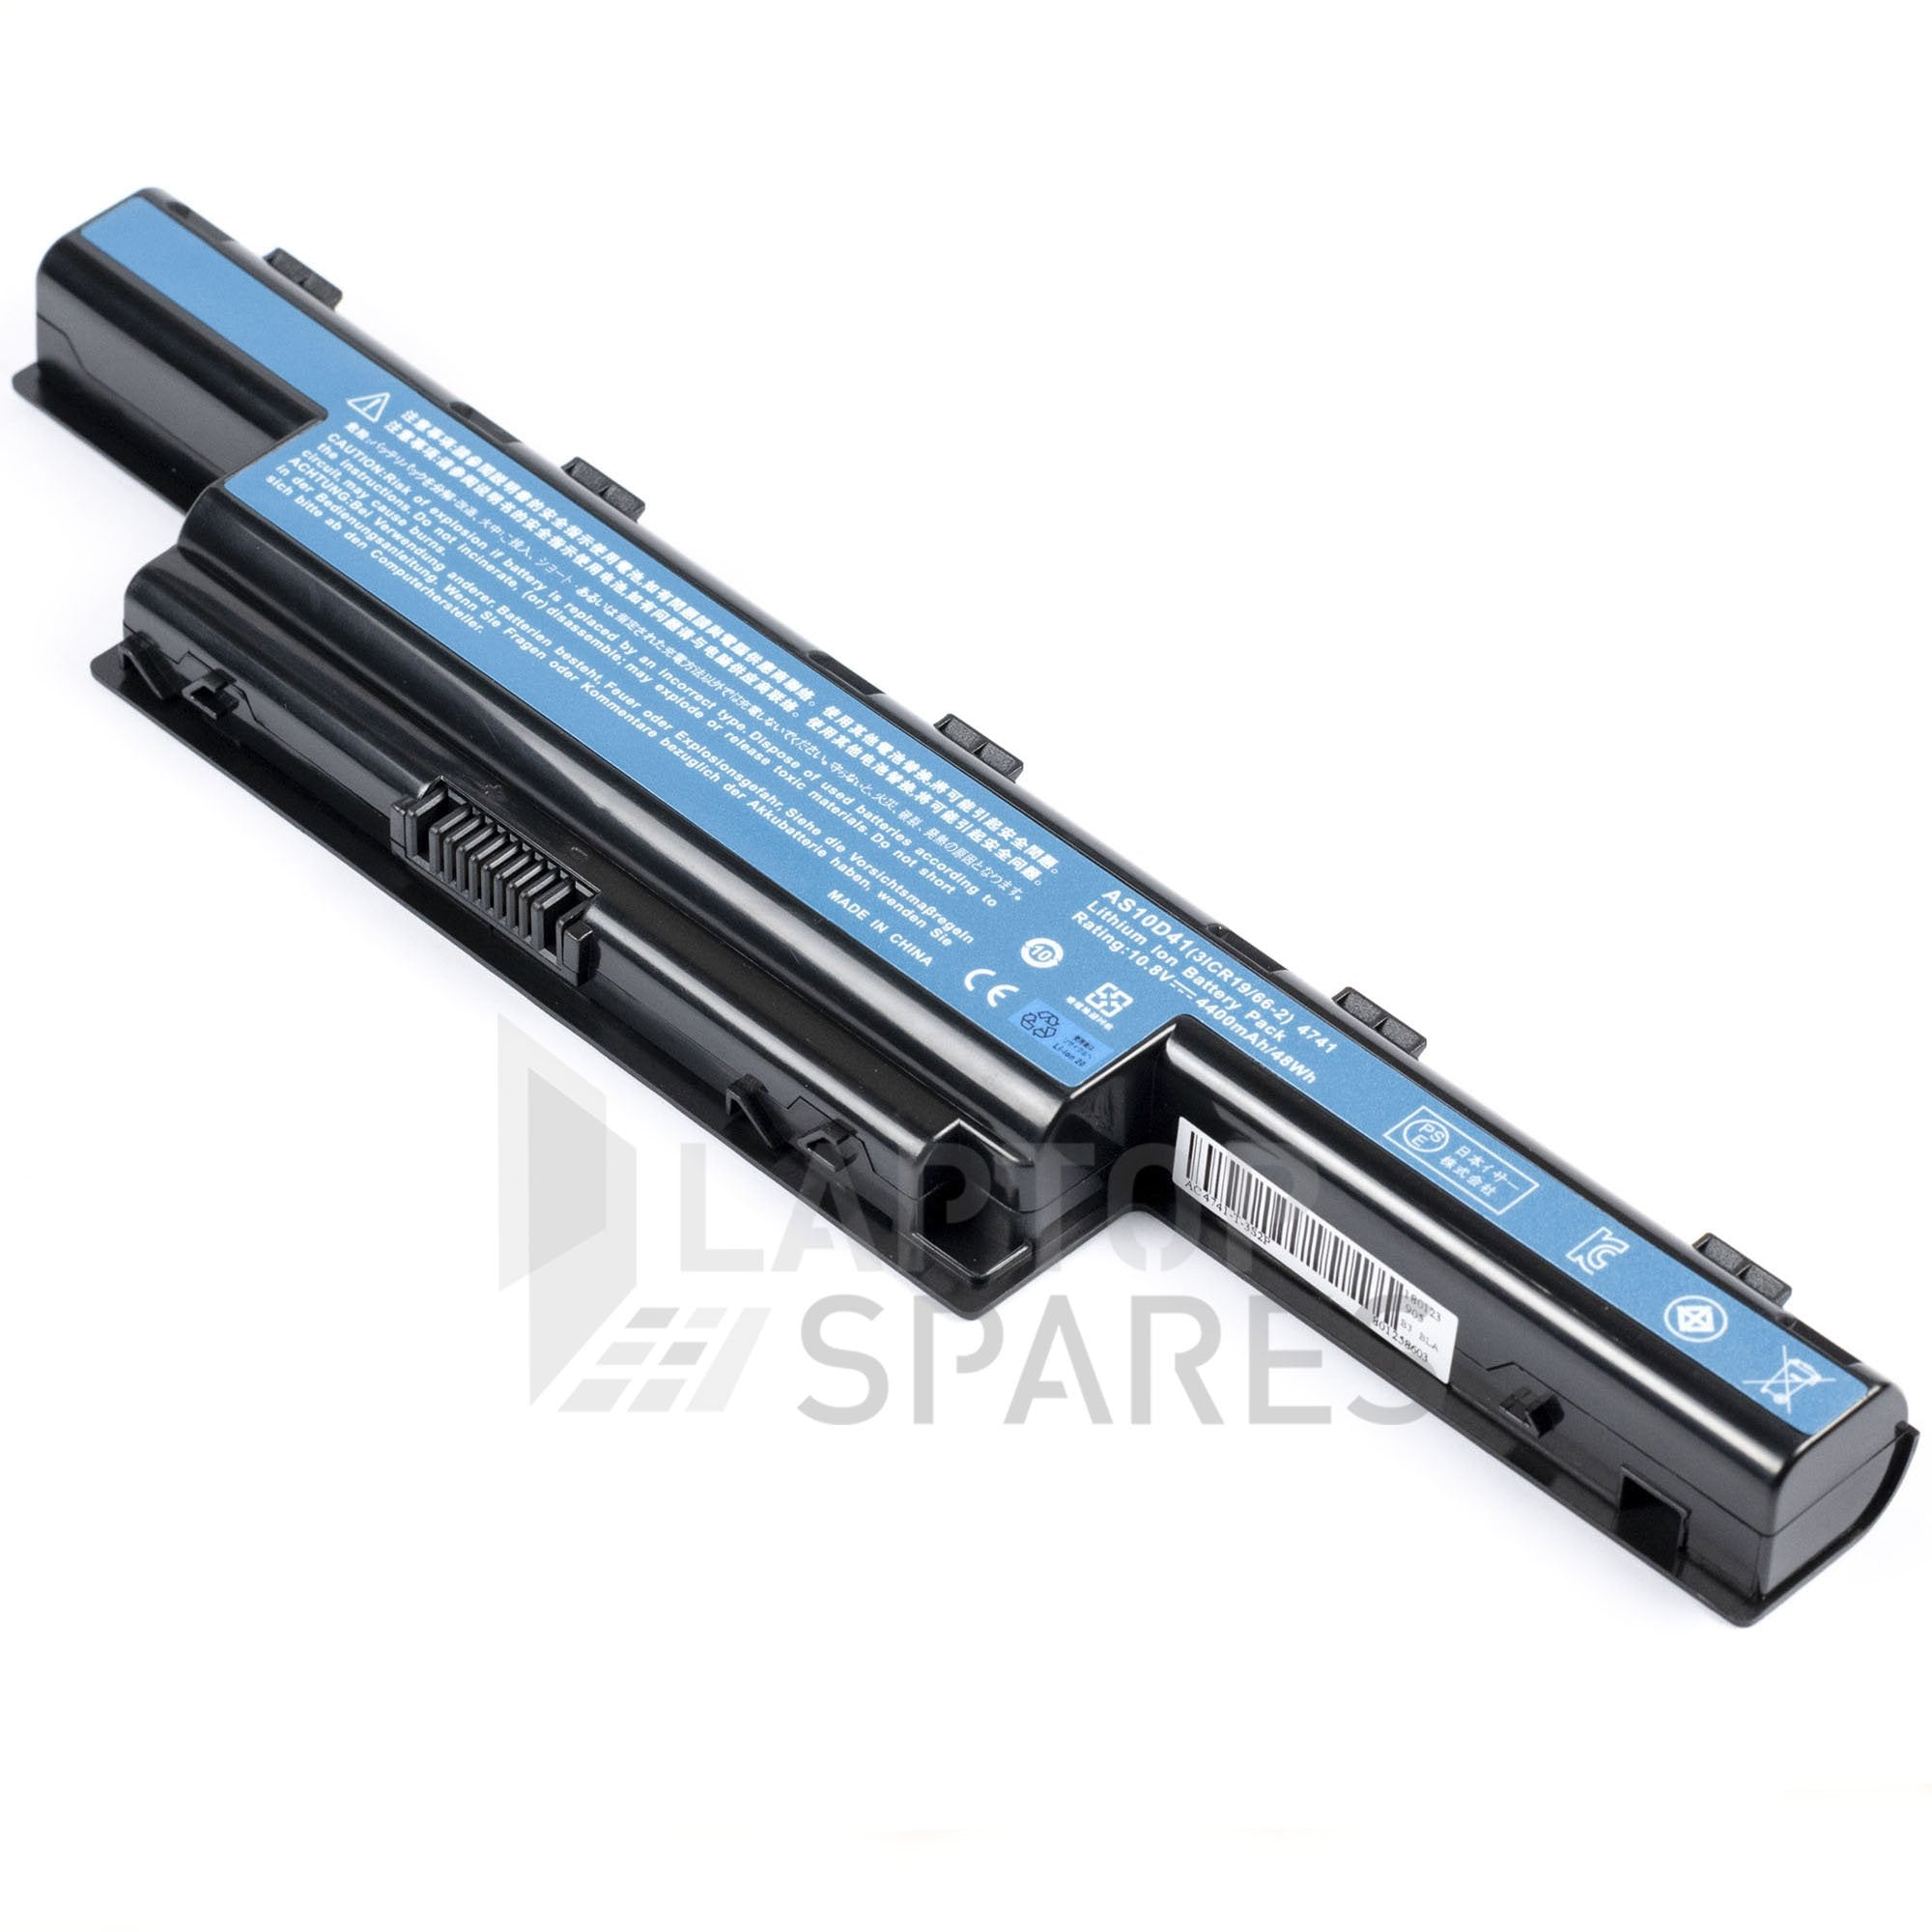 Acer eMachine E732ZG G640 G640G 4400mAh 6 Cell Battery